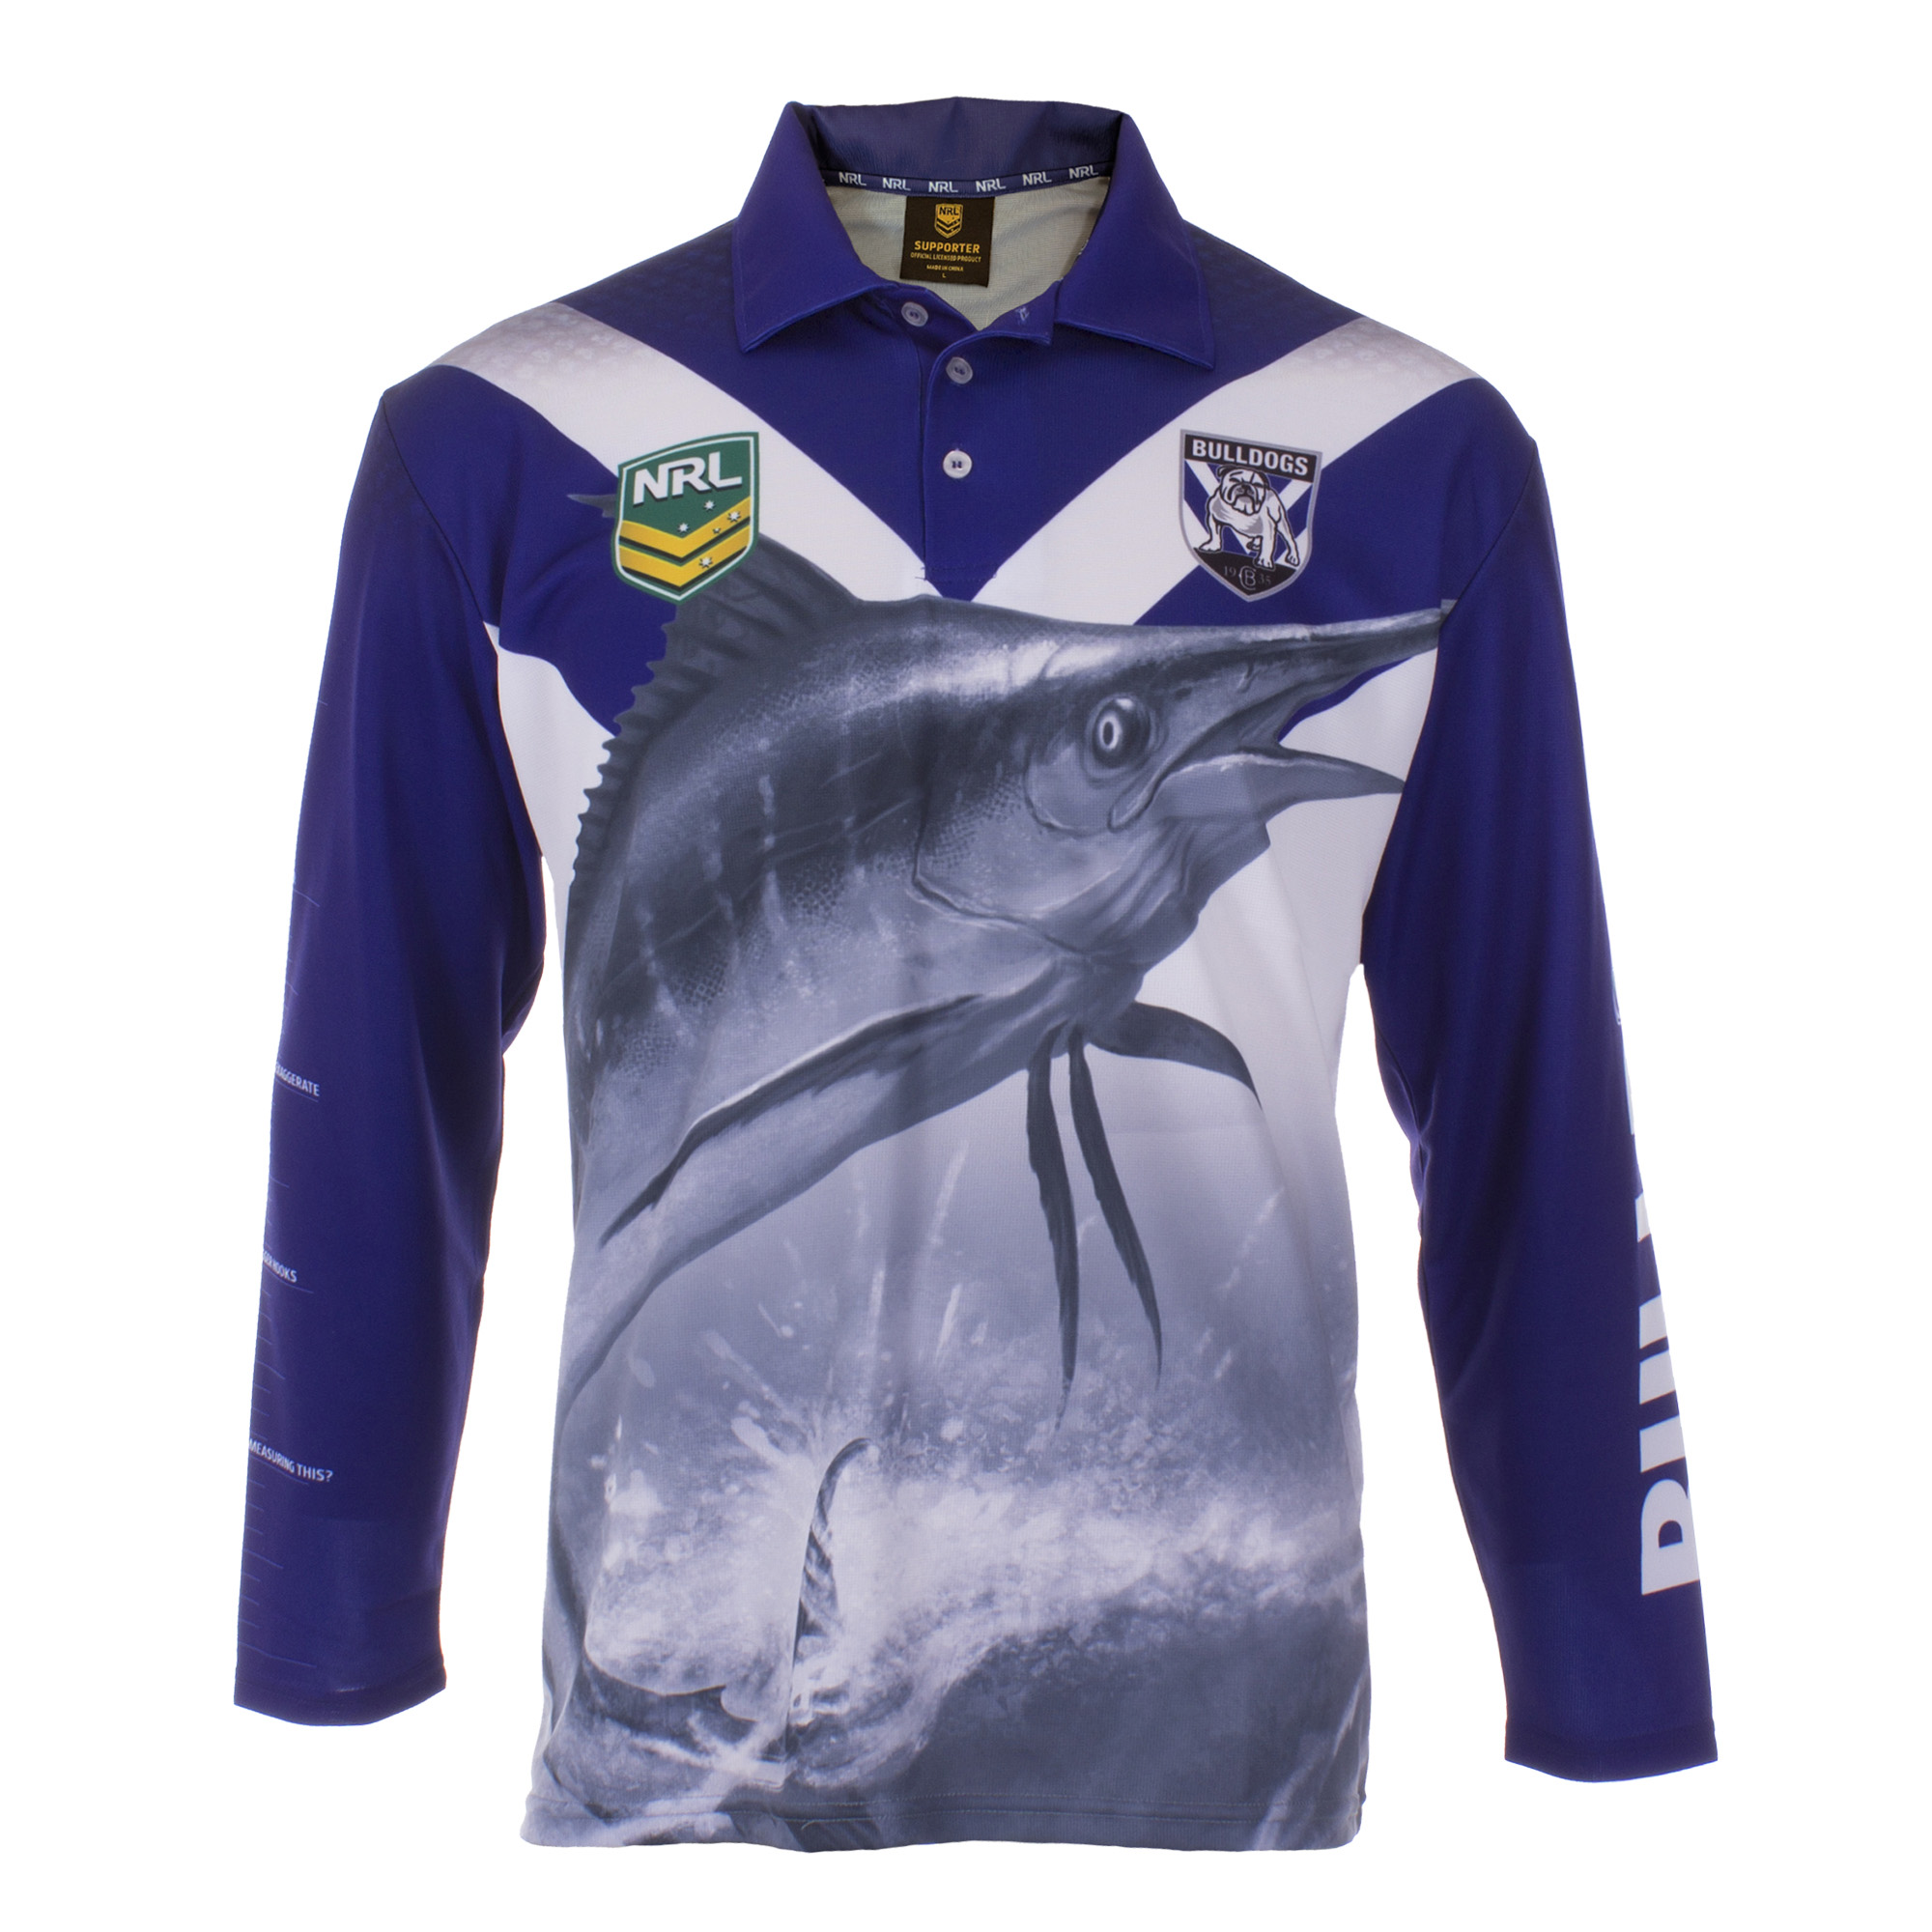 Personalised NRL Bulldogs Fishing Shirt - Front View